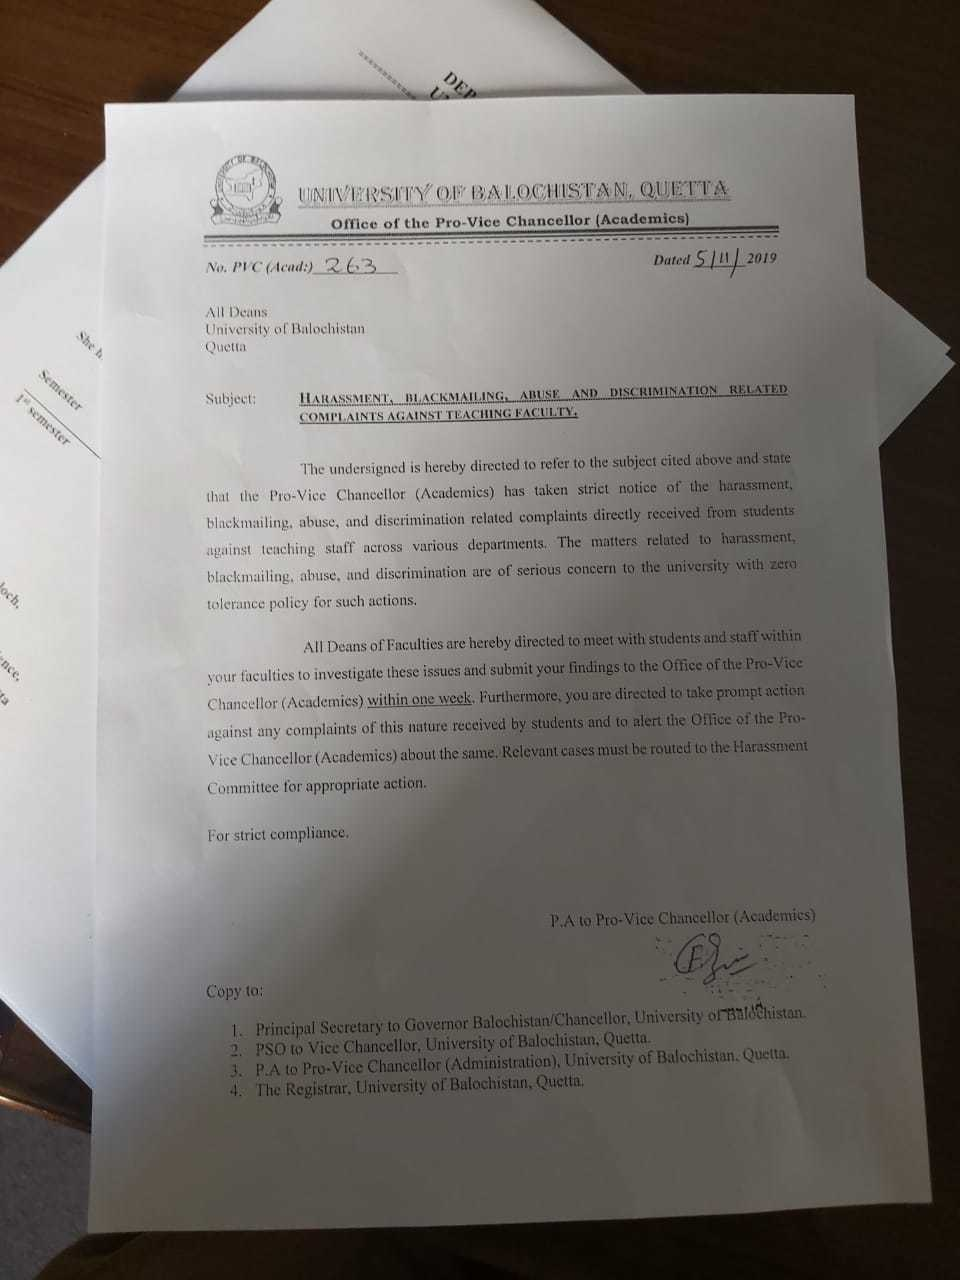 Copy of a letter from the pro-vice chancellor's office to department deans to take action against faculty members allegedly involved in harassment, blackmail and sexual abuse of students.